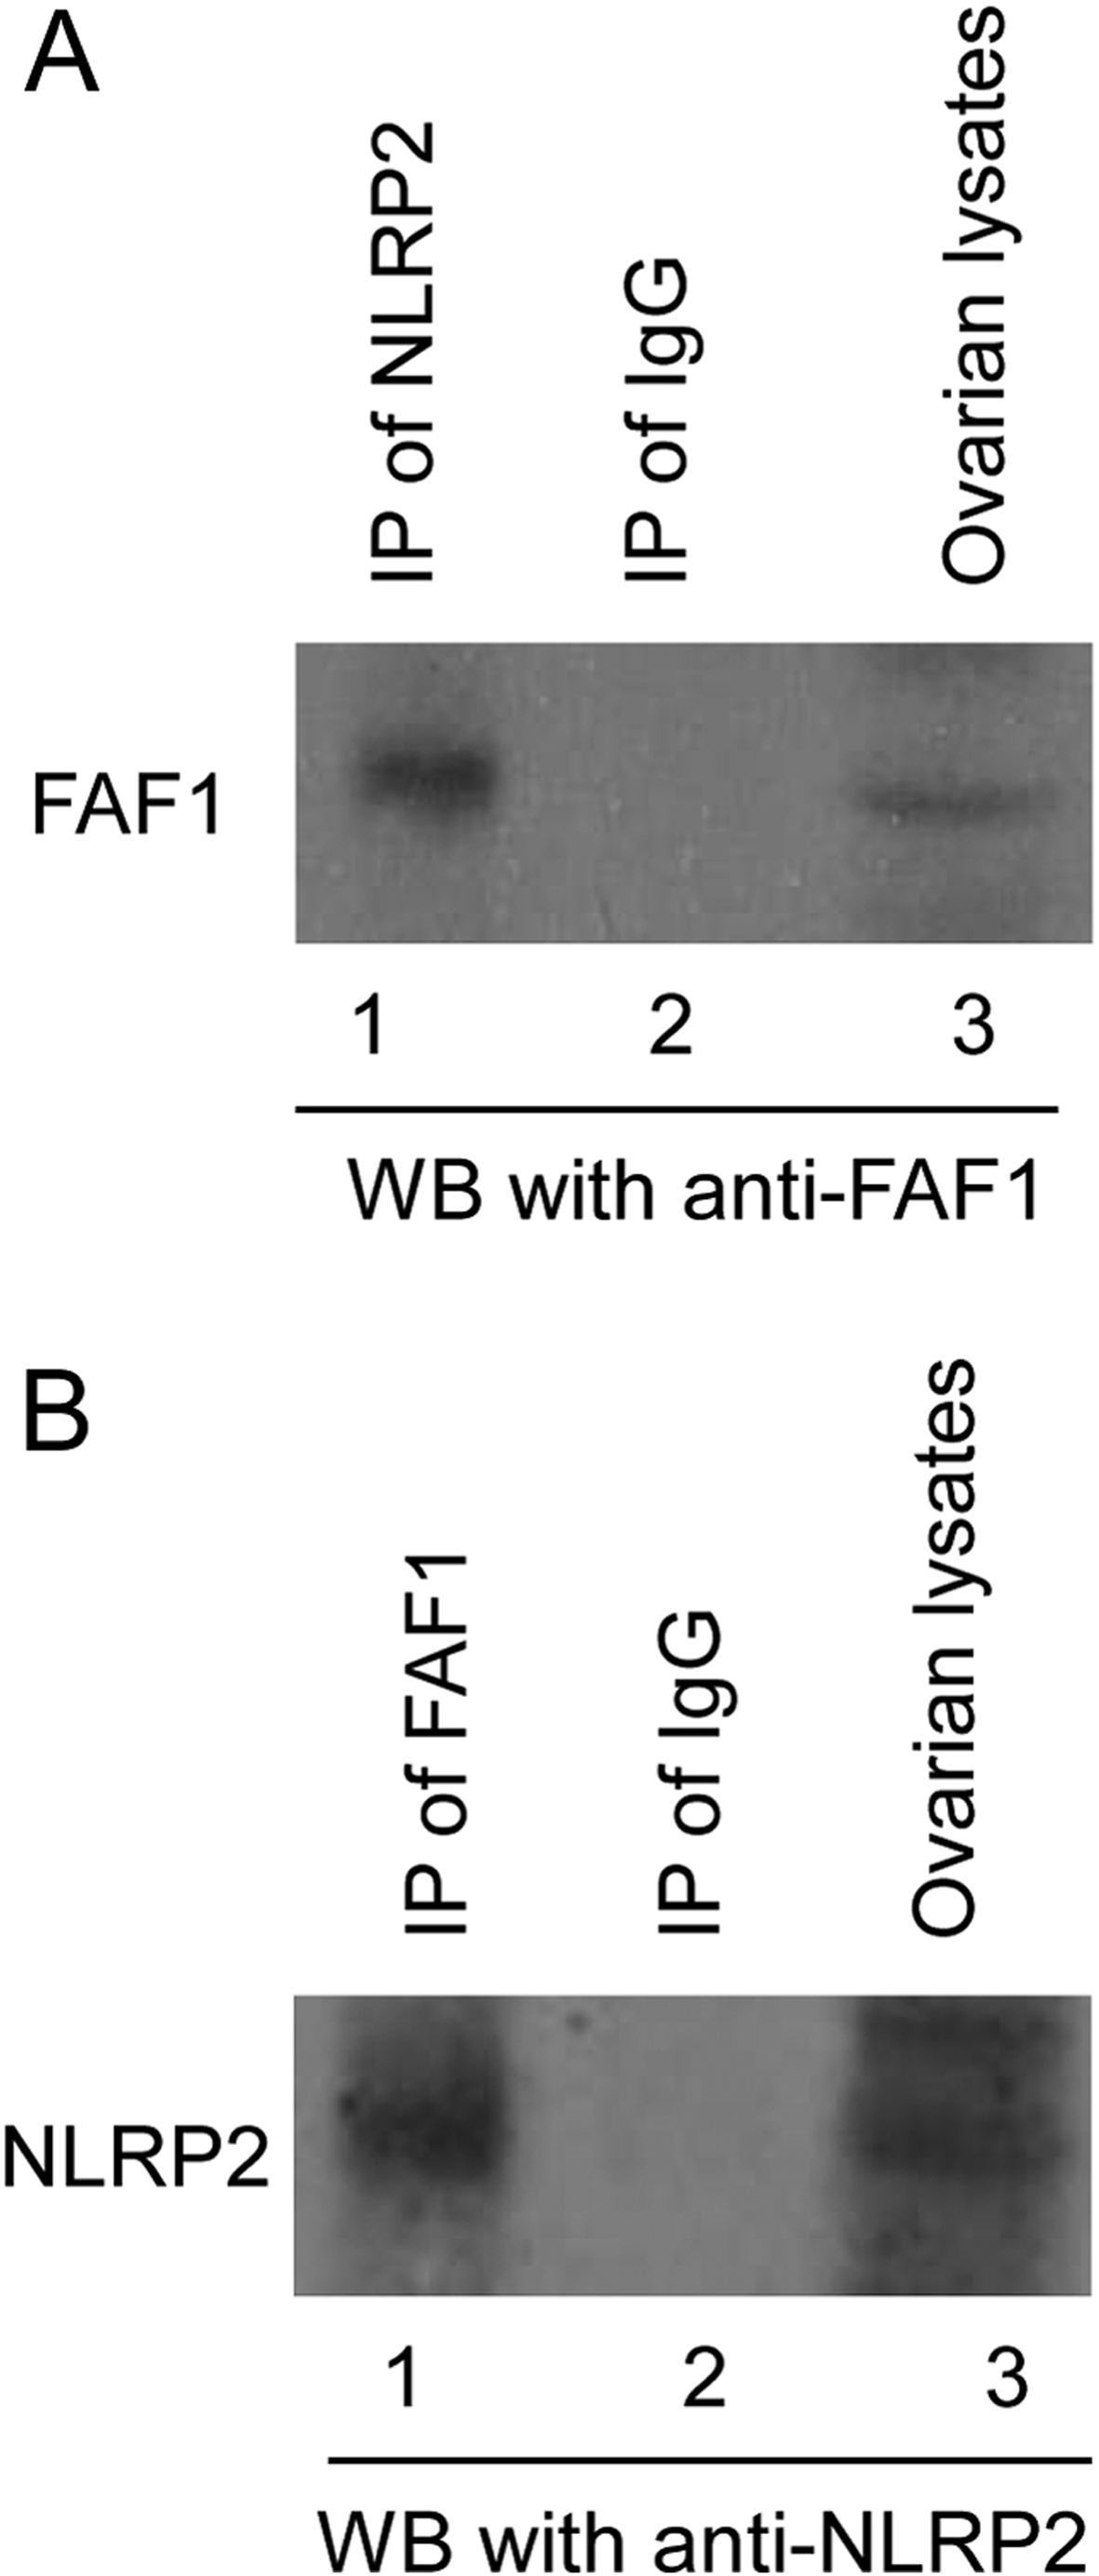 NLRP2 and FAF1 deficiency blocks early embryogenesis in the